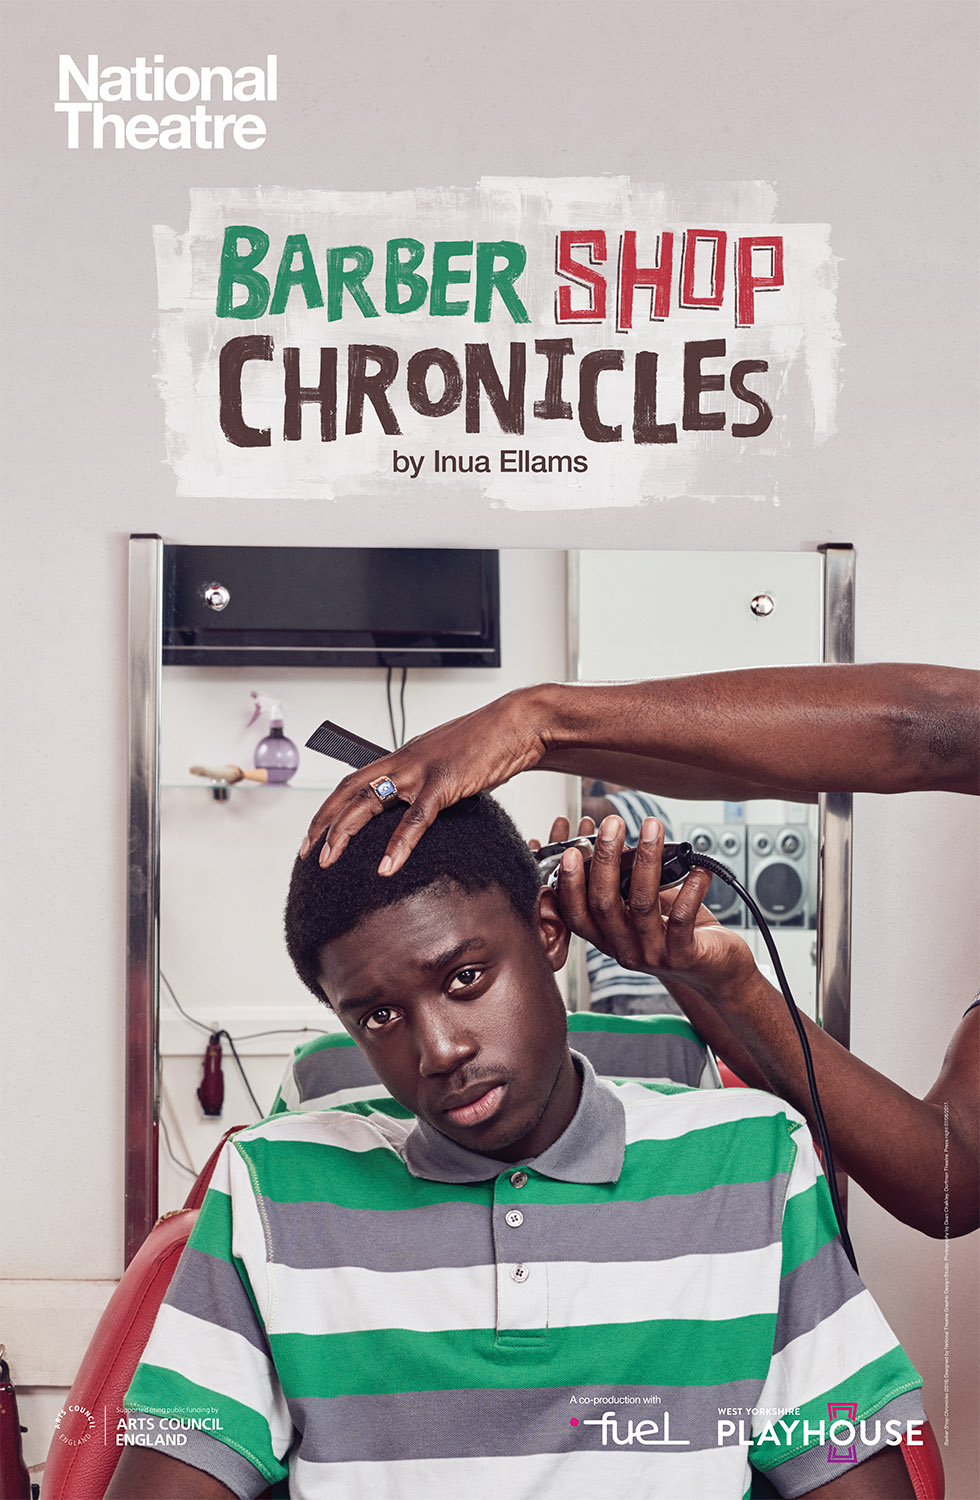 Barber Shop Chronicles Artwork, National Theatre